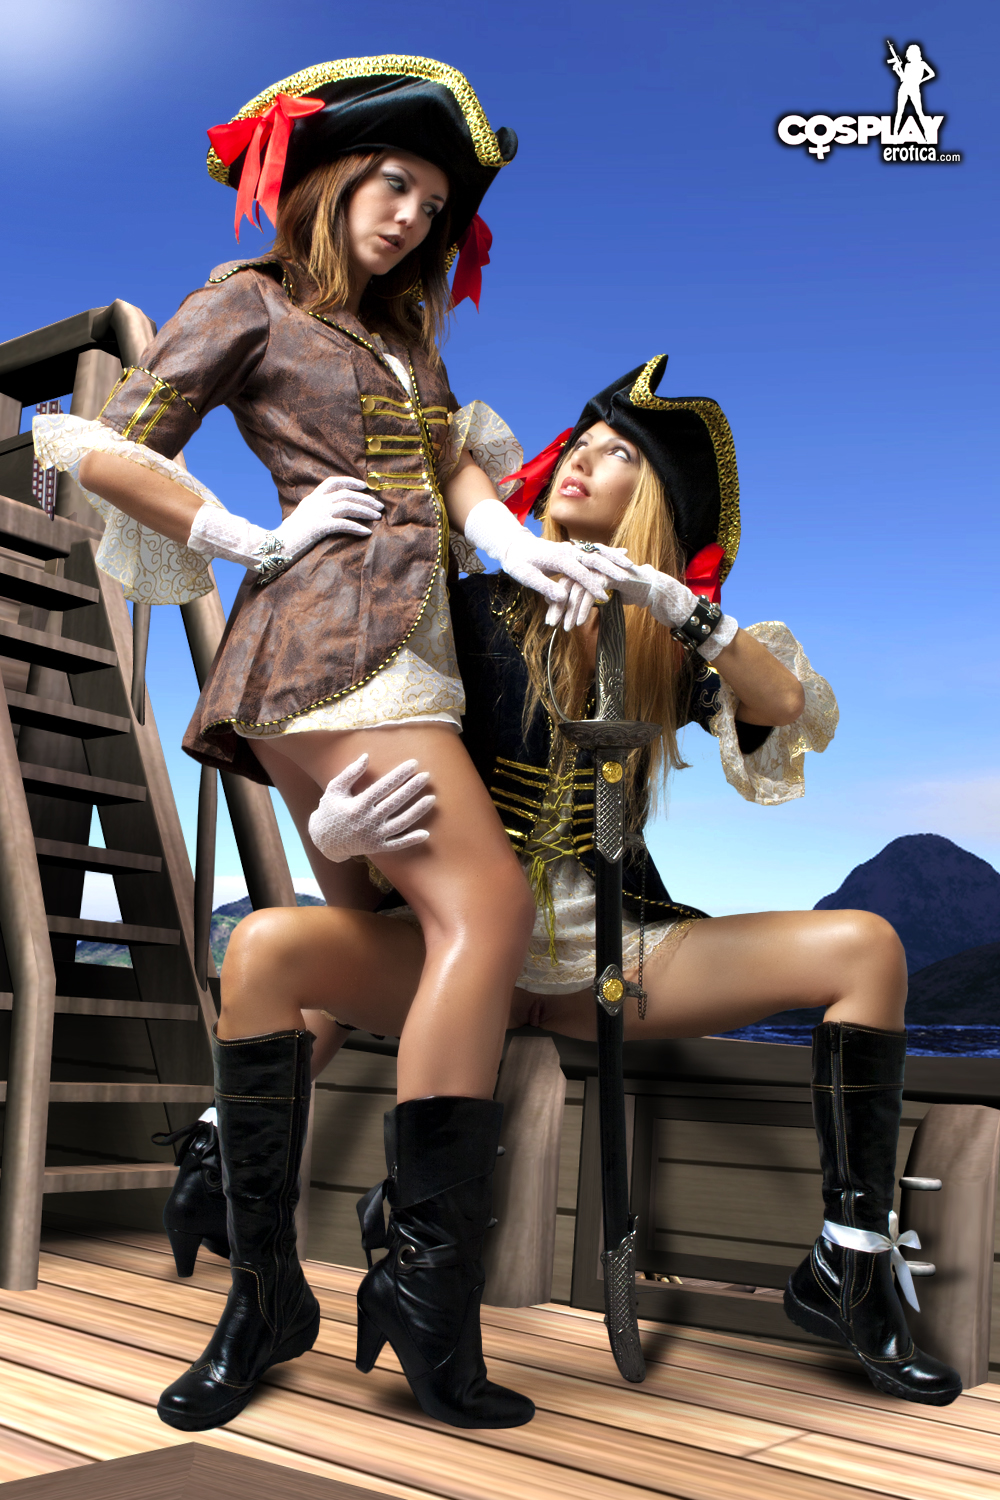 Cosplay erotica piratebay smut movie